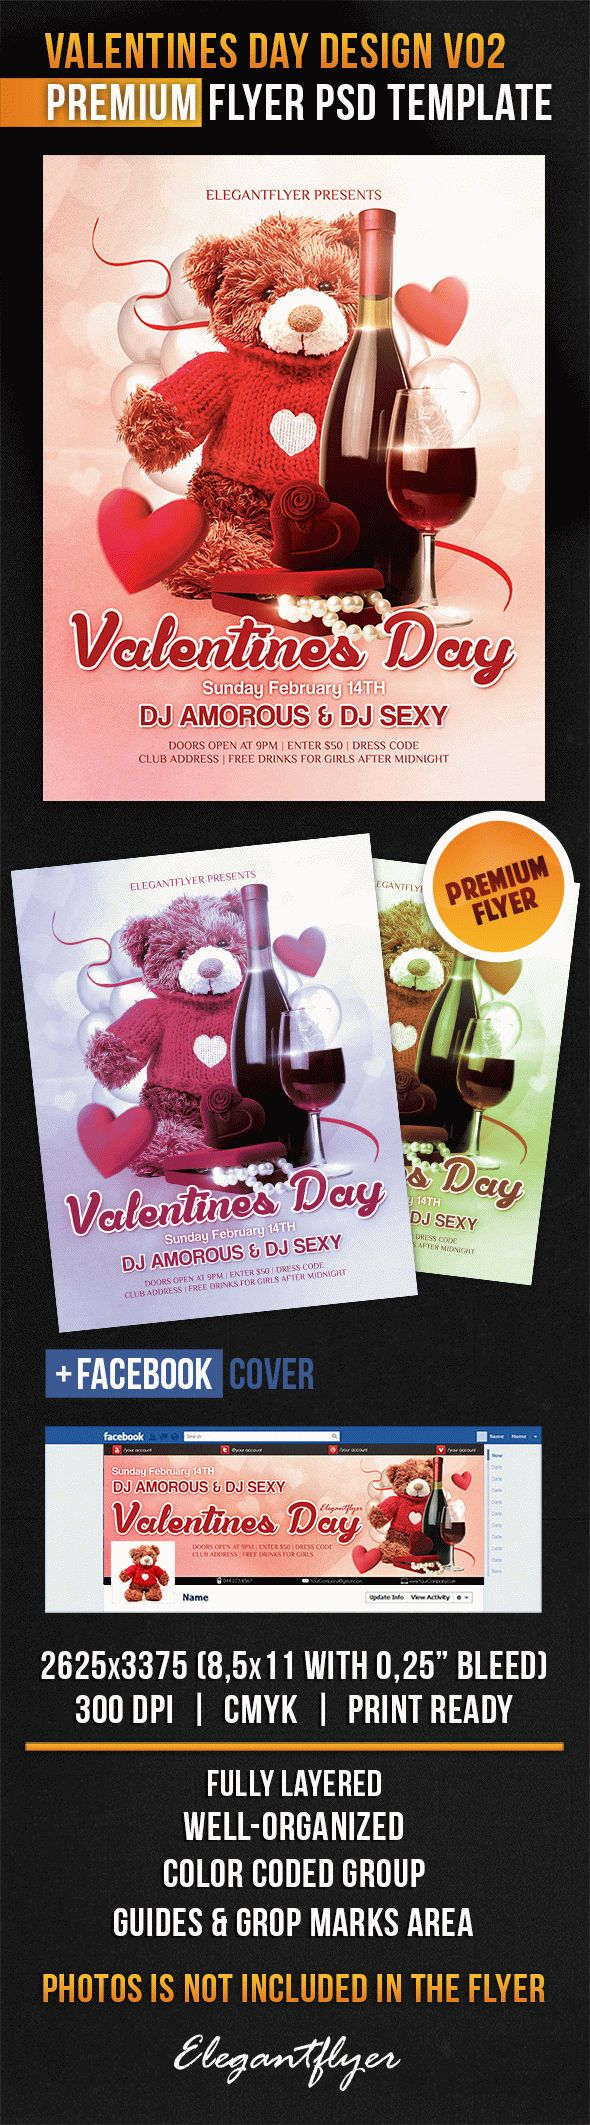 Valentines Day Design V02 – Flyer PSD Template